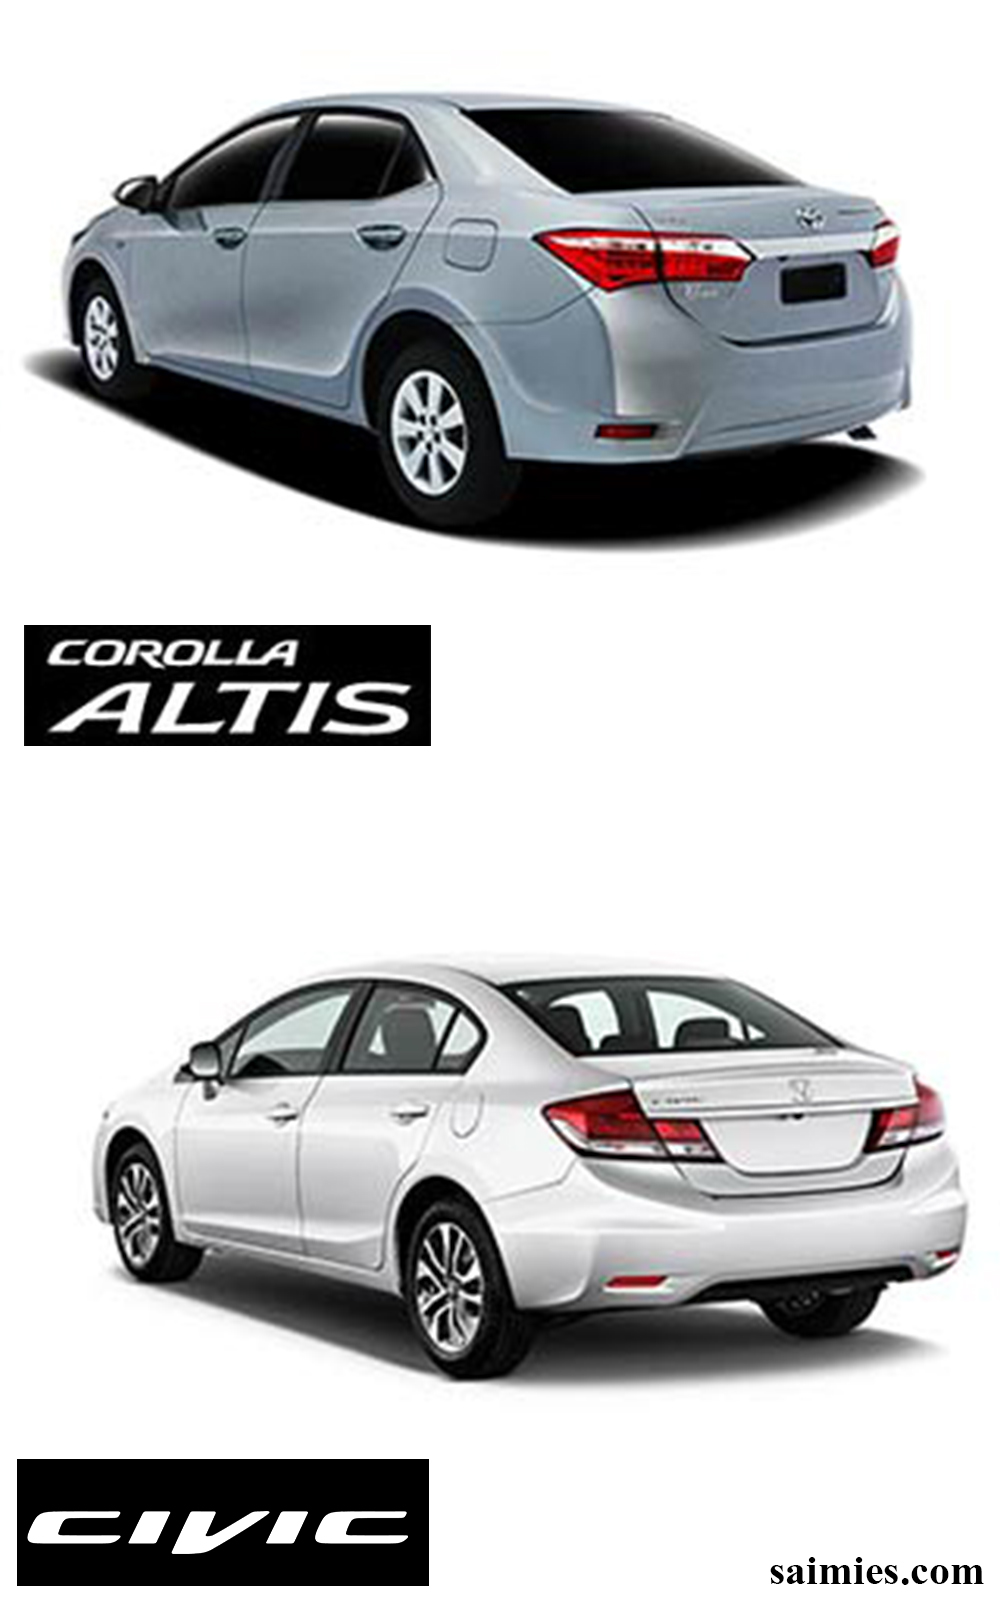 toyota corolla altis vs honda civic saimies tech. Black Bedroom Furniture Sets. Home Design Ideas